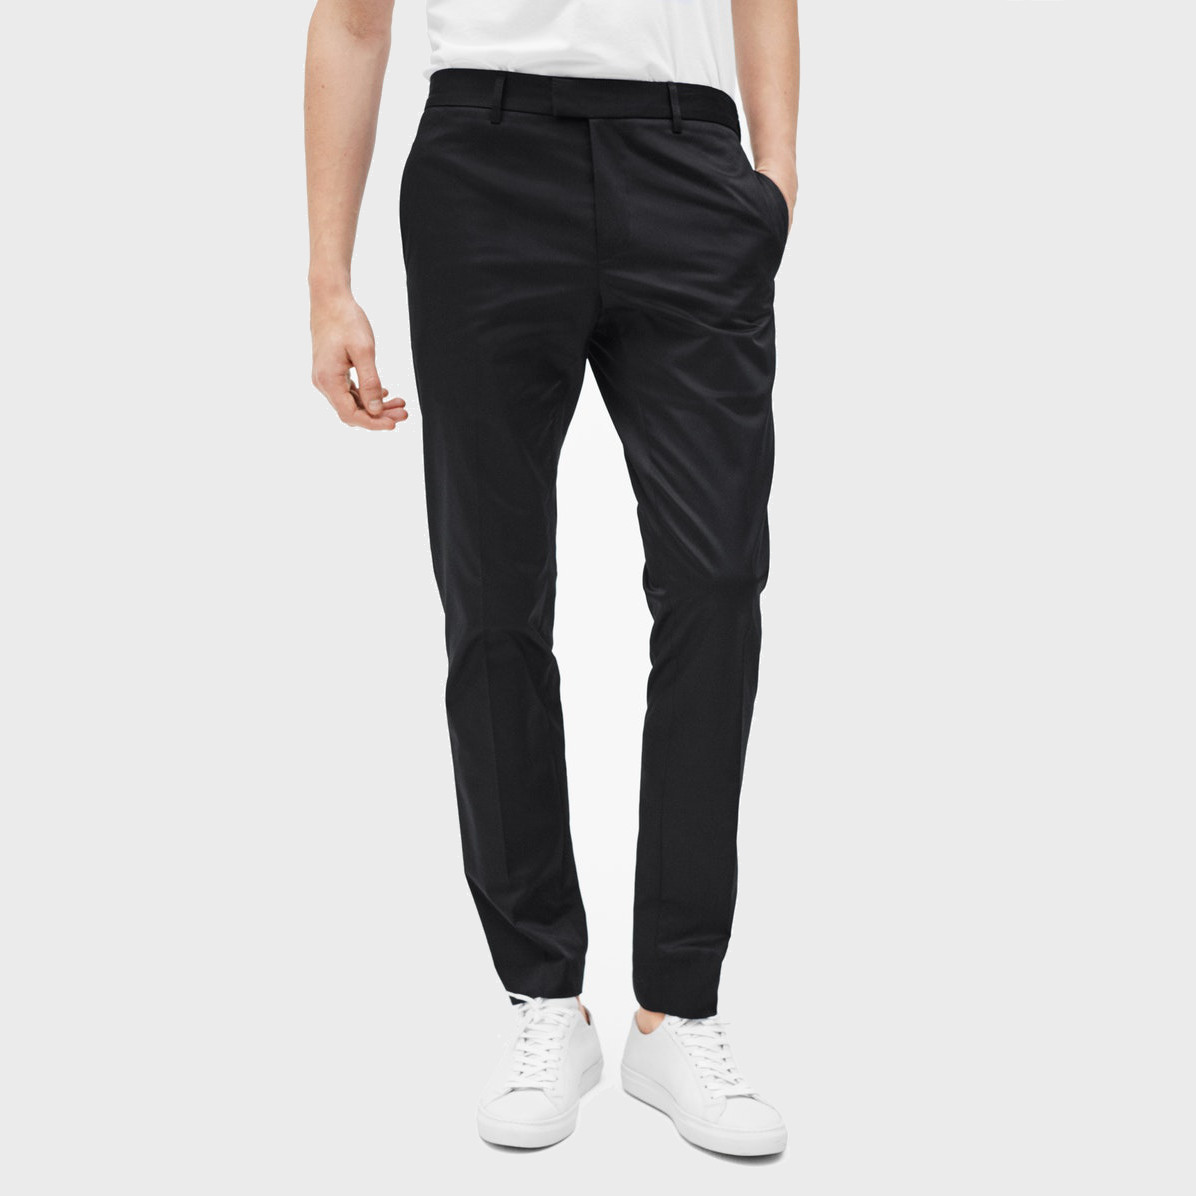 Filippa-K Men's Fall Fashion Essentials